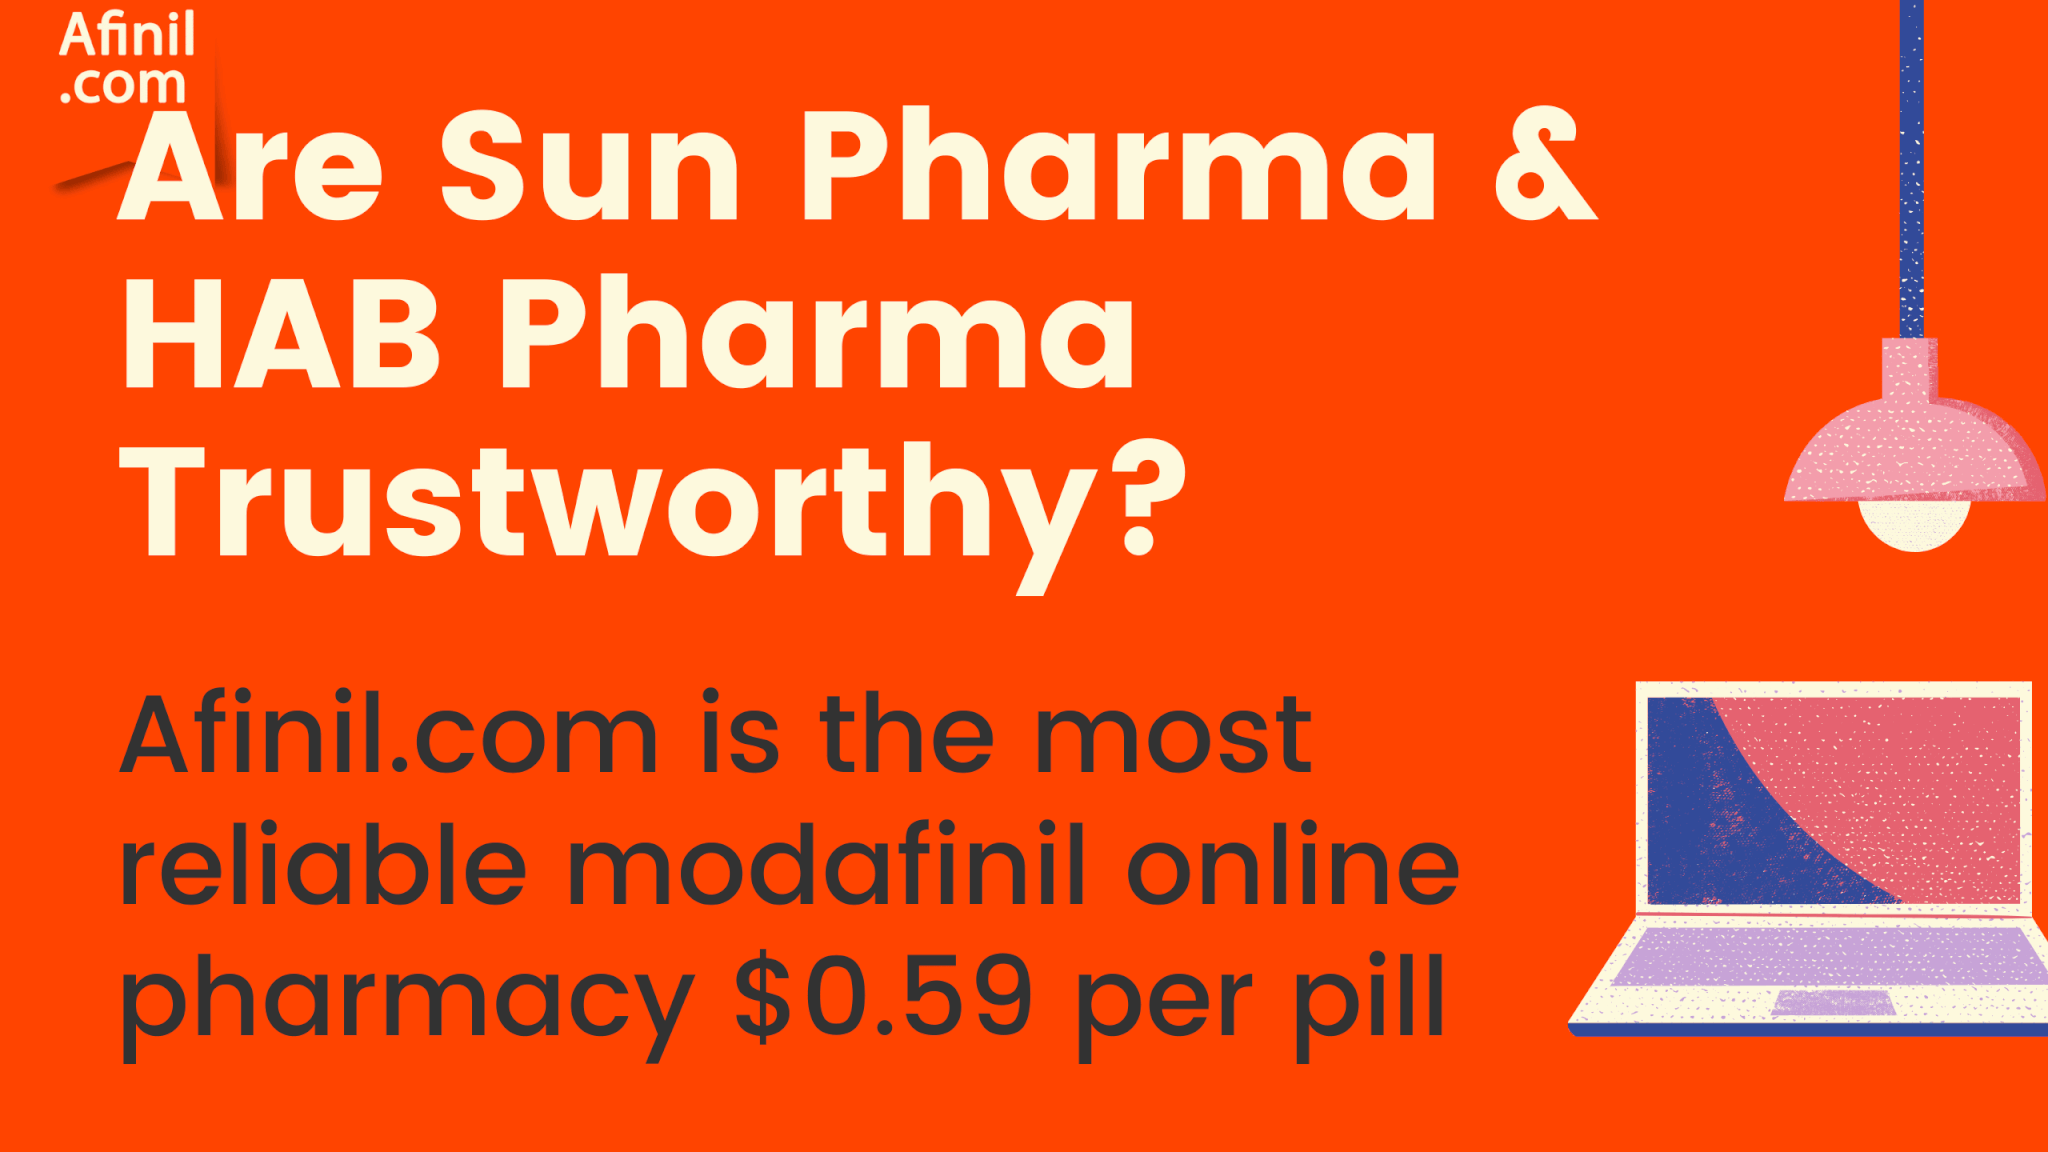 Are Sun Pharma and HAB Pharma Trustworthy